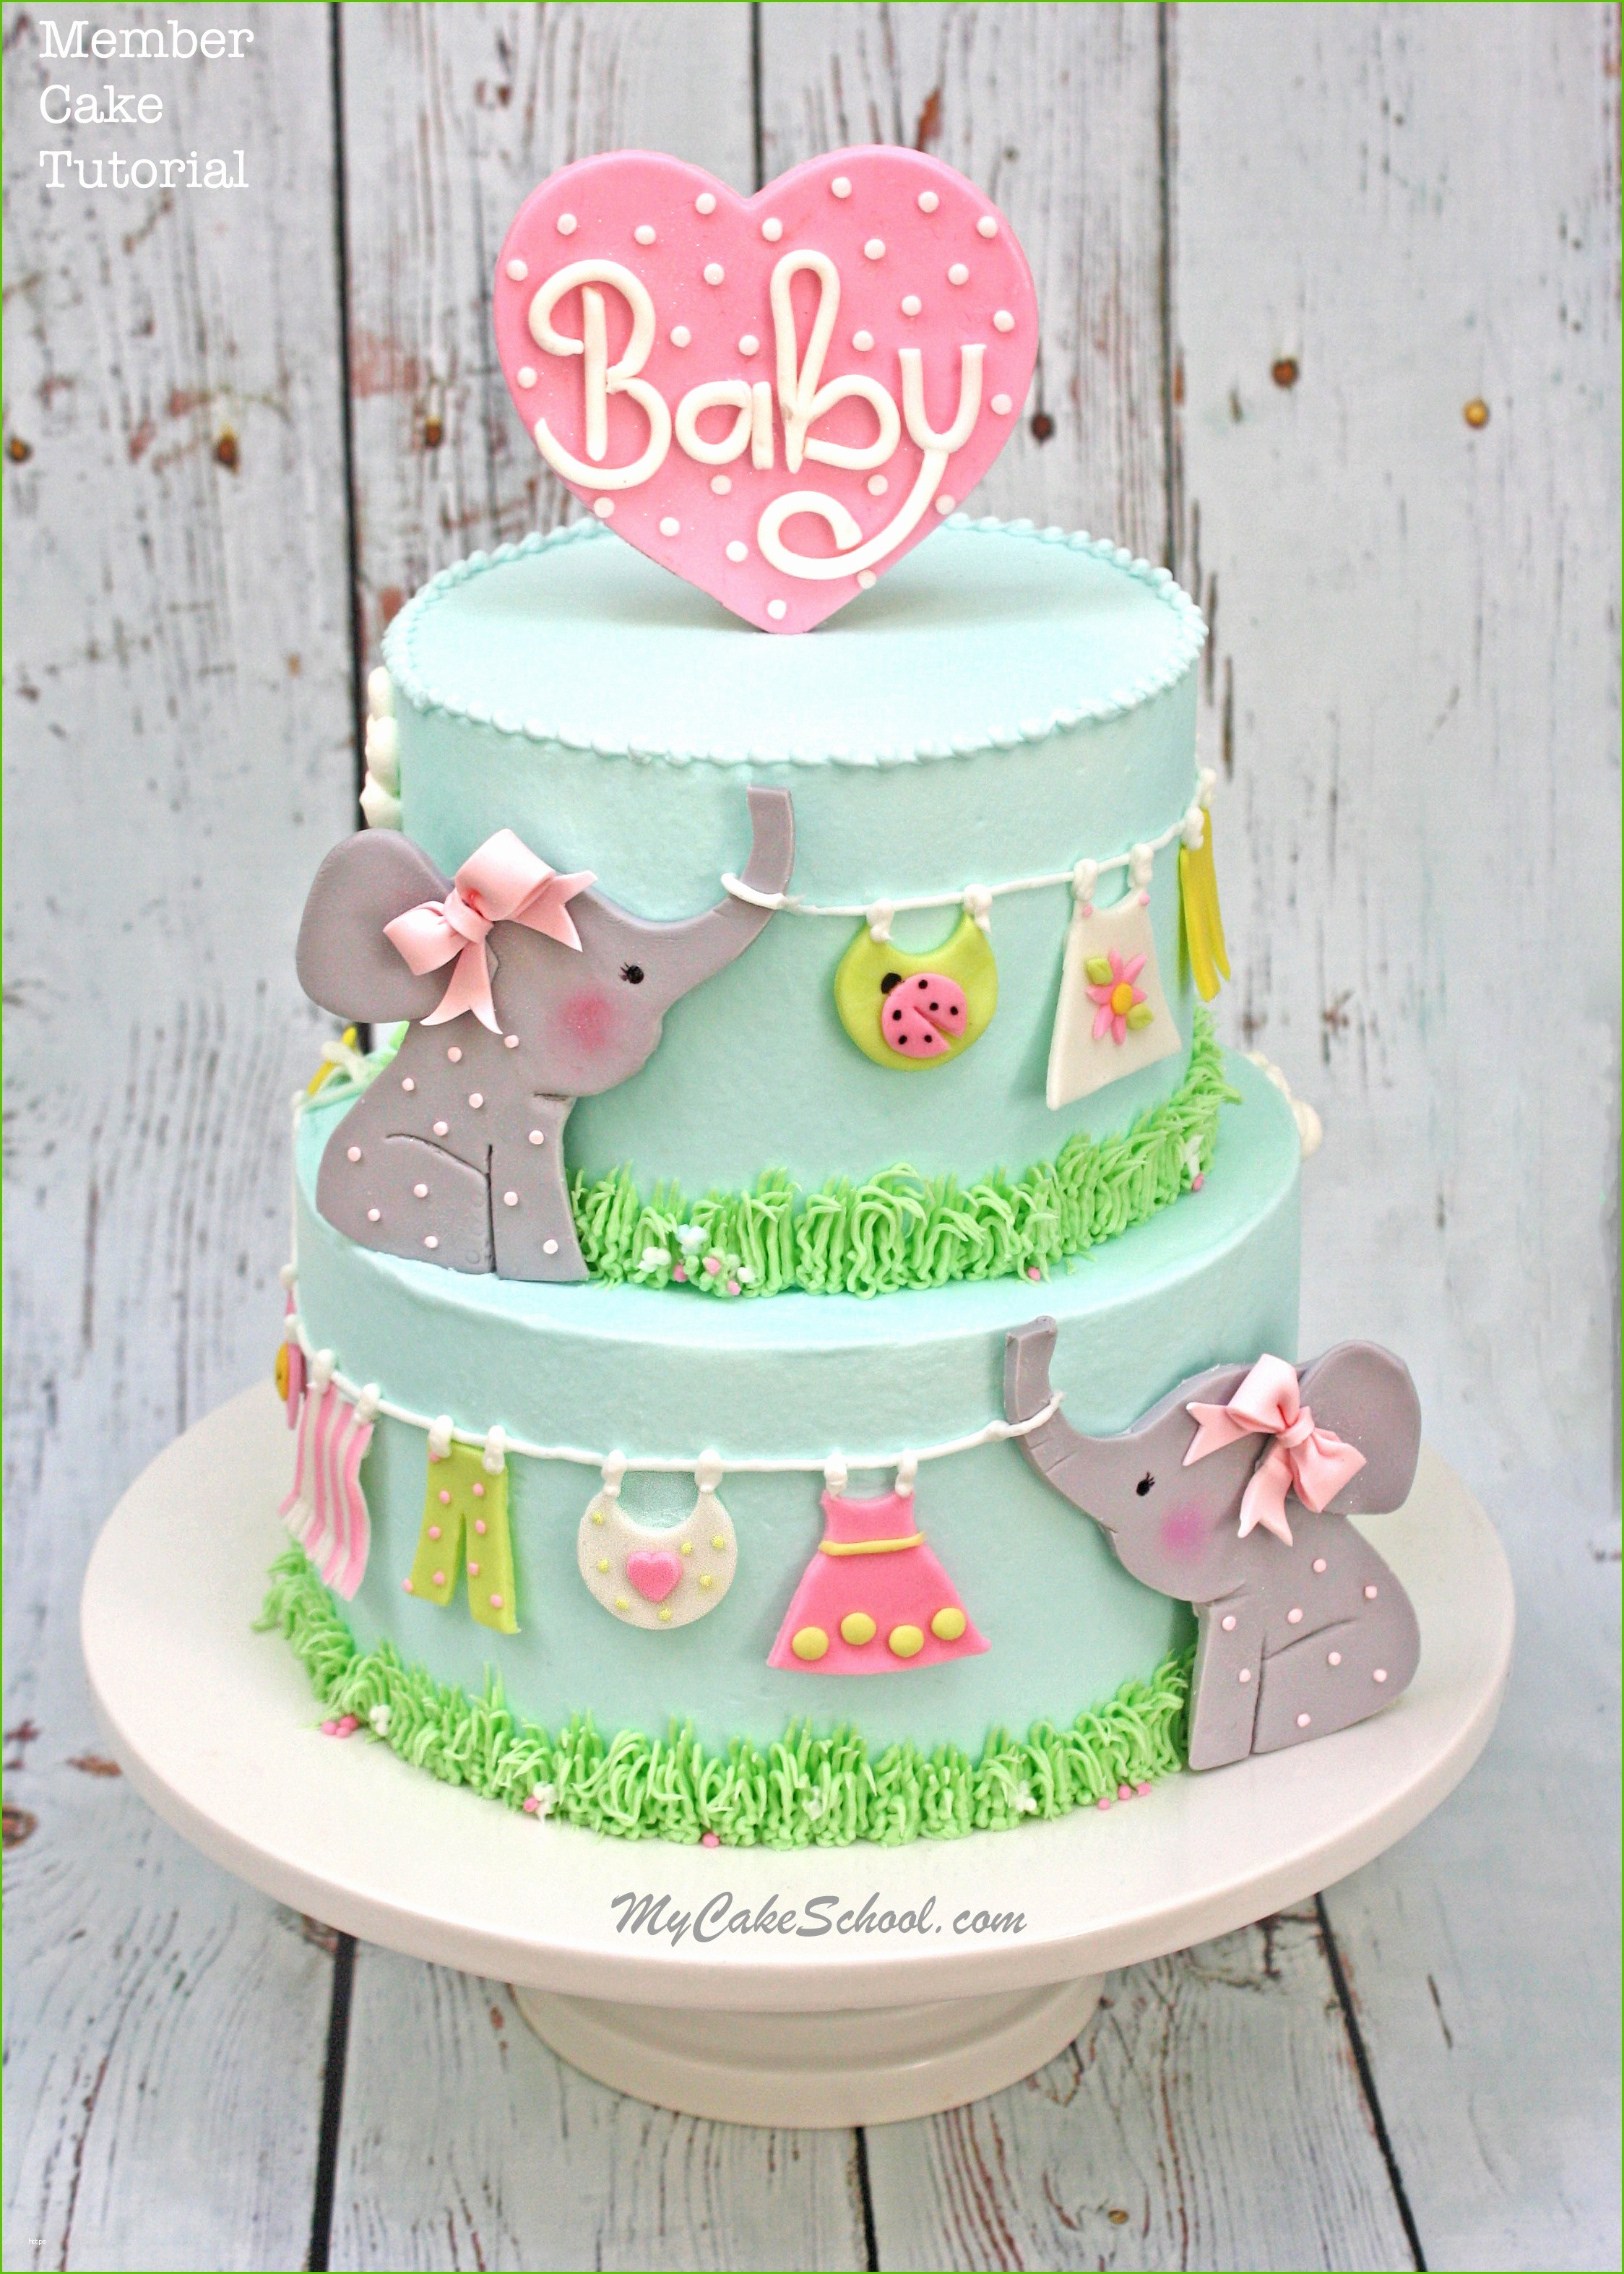 Modern Baby Shower Cake Recipes New Baby Shower Cakes - Baby Shower Ideas for Baby Shower Cake Recipes